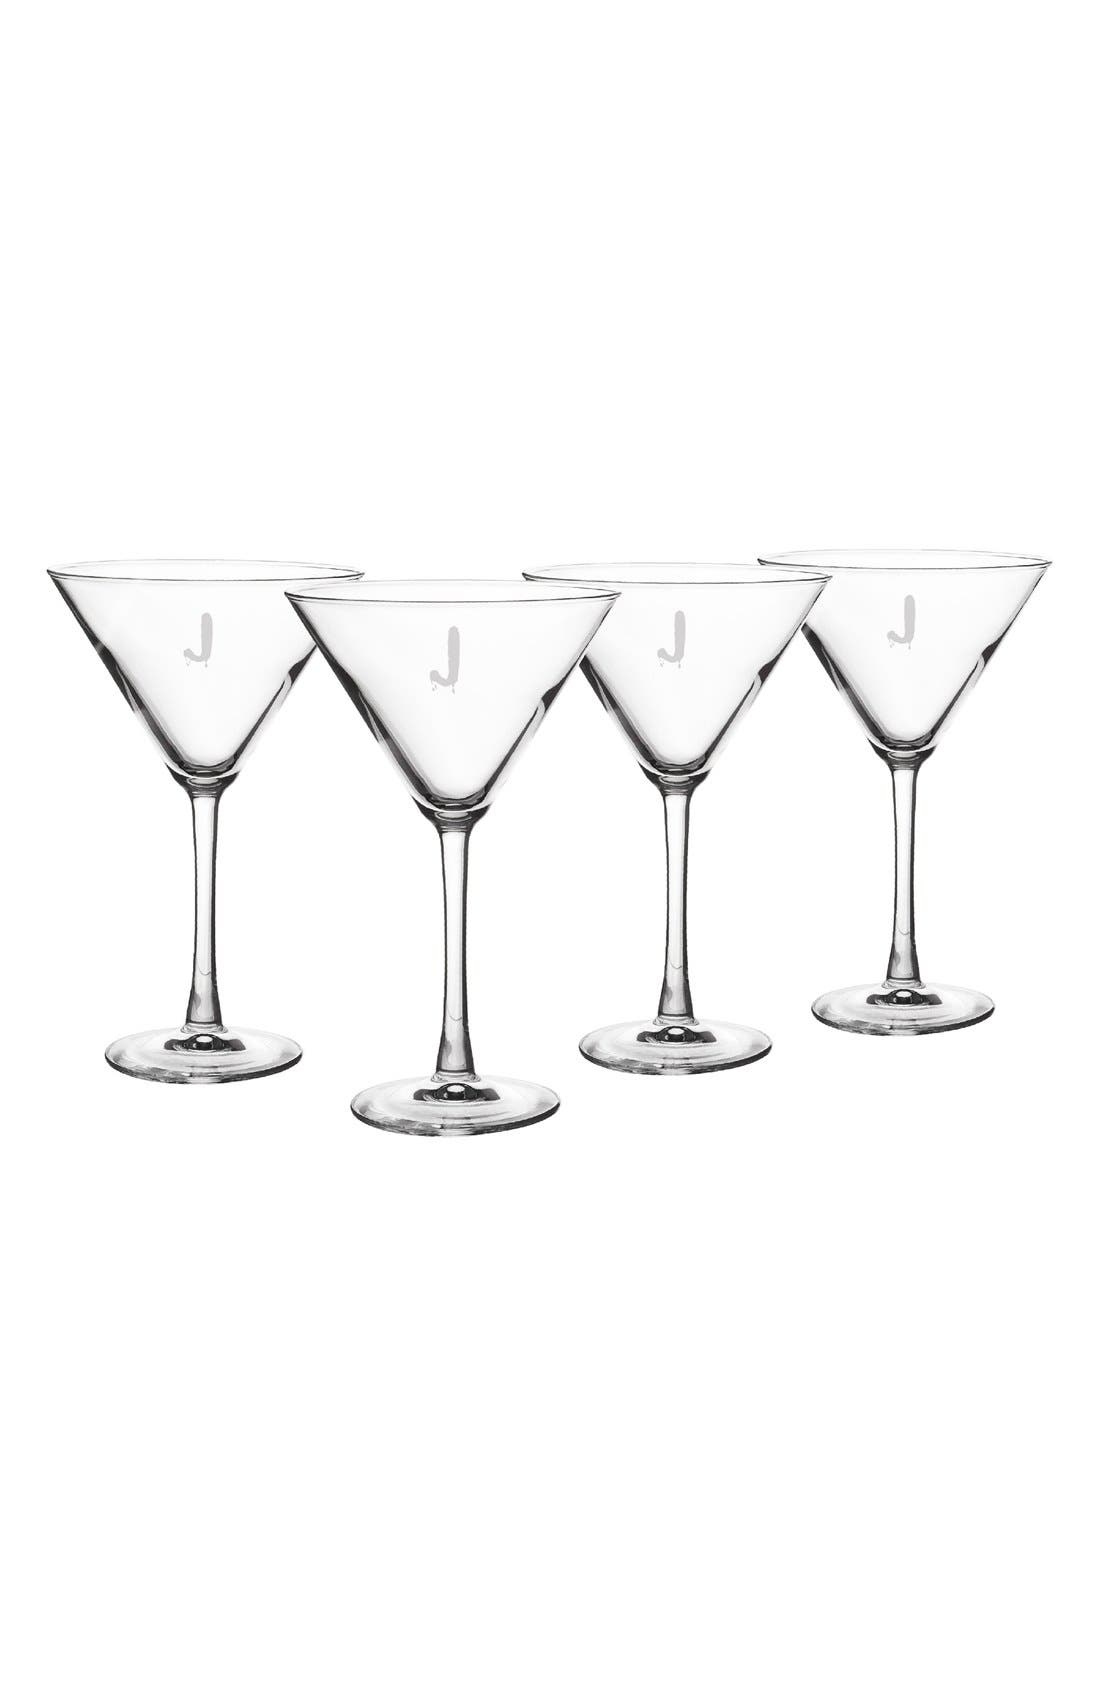 Main Image - Cathy's Concepts 'Spooky' Monogram Martini Glasses (Set of 4)